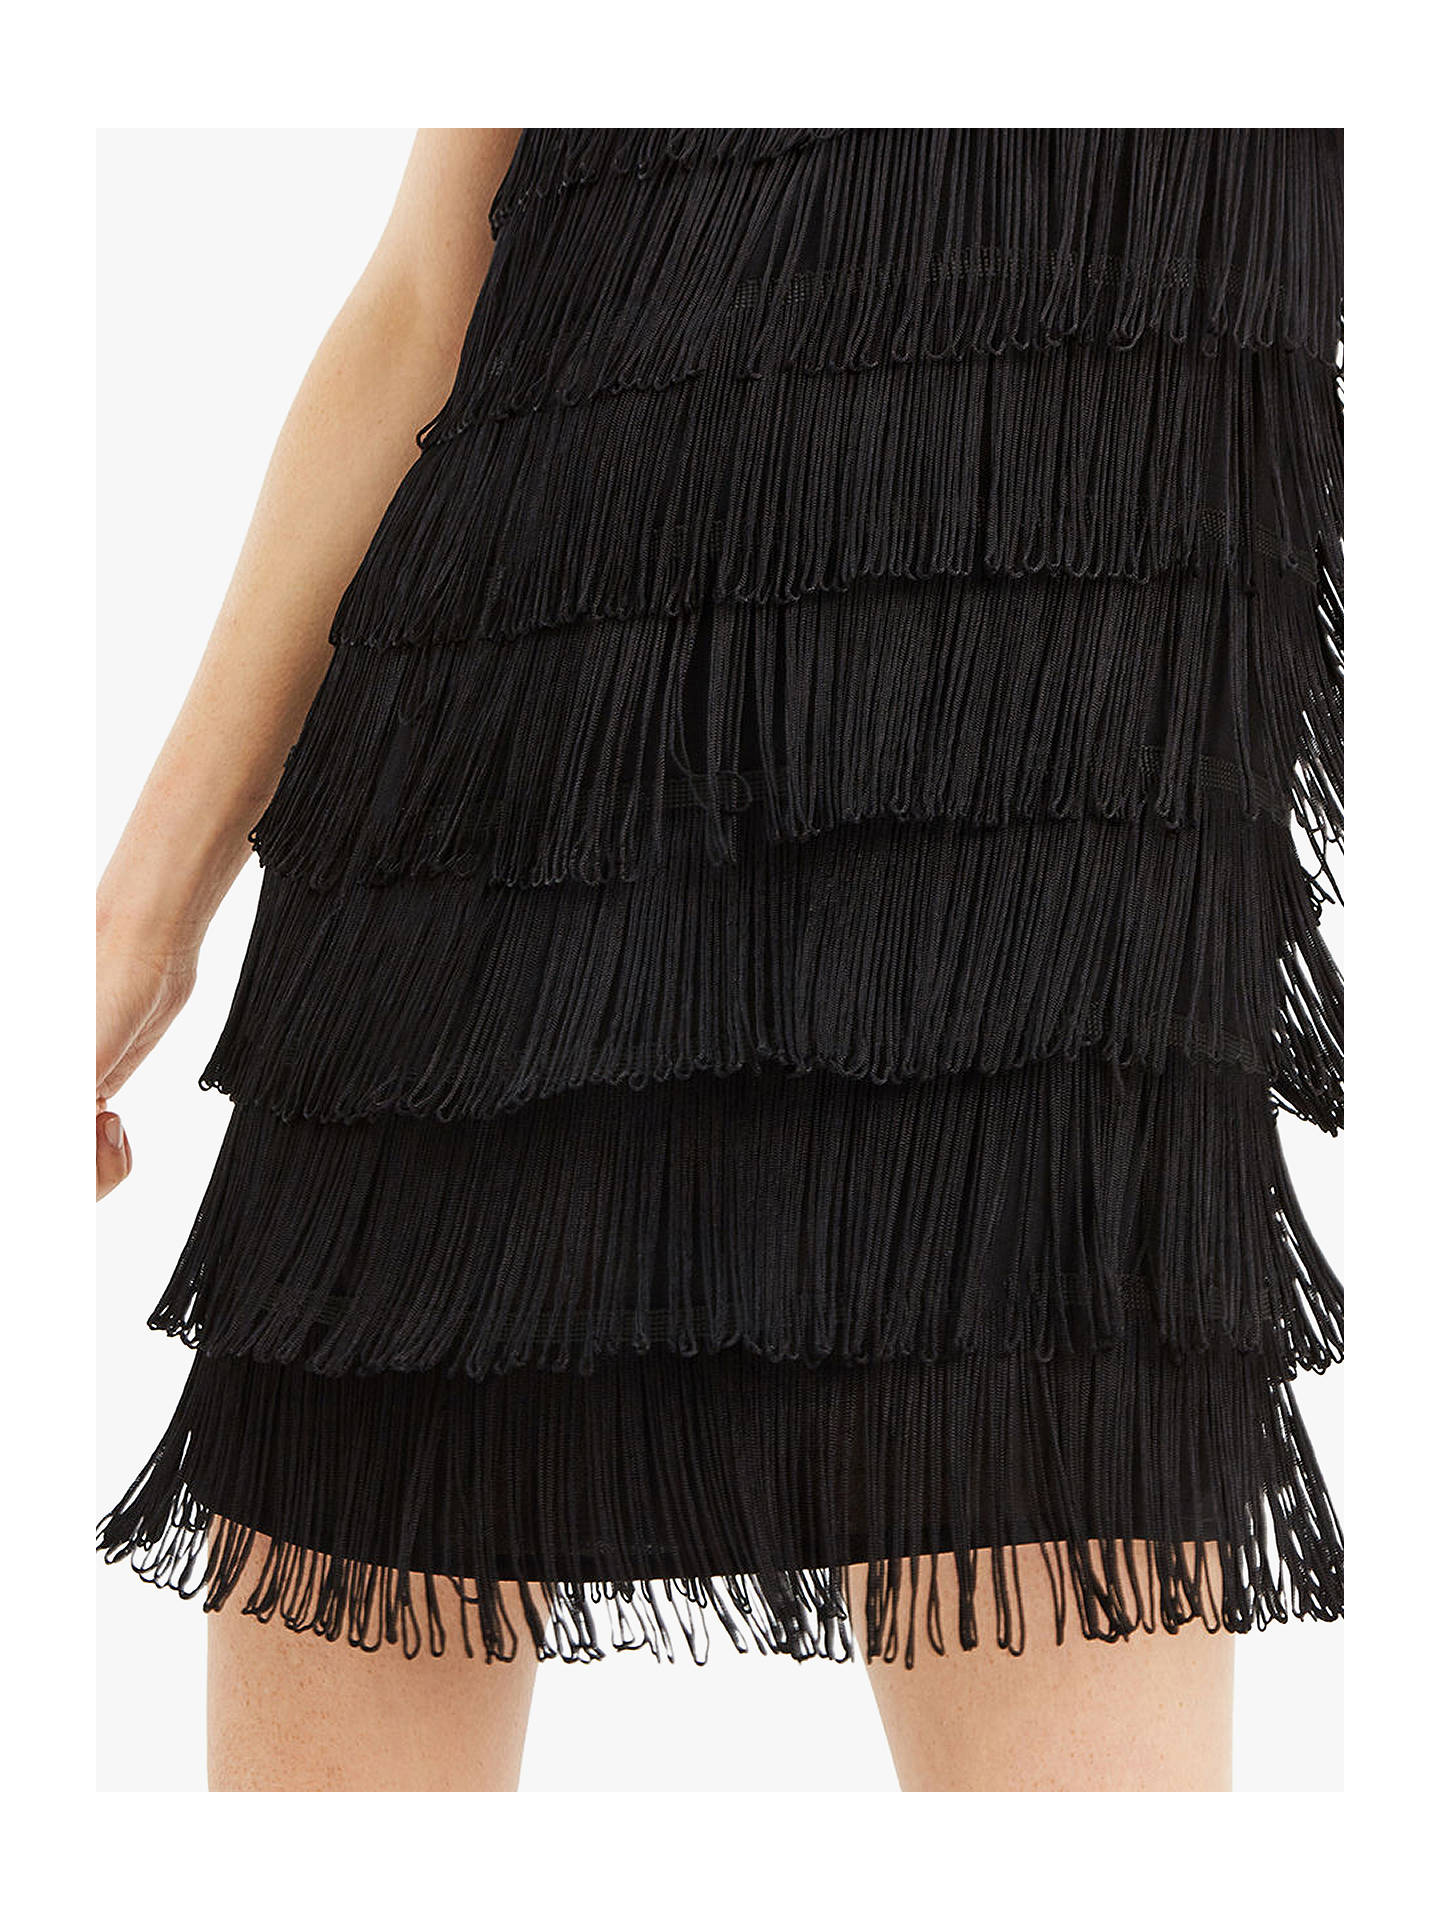 4dddf490b7f4 ... Buy Oasis Lace Fringe Dress, Black, 6L Online at johnlewis.com